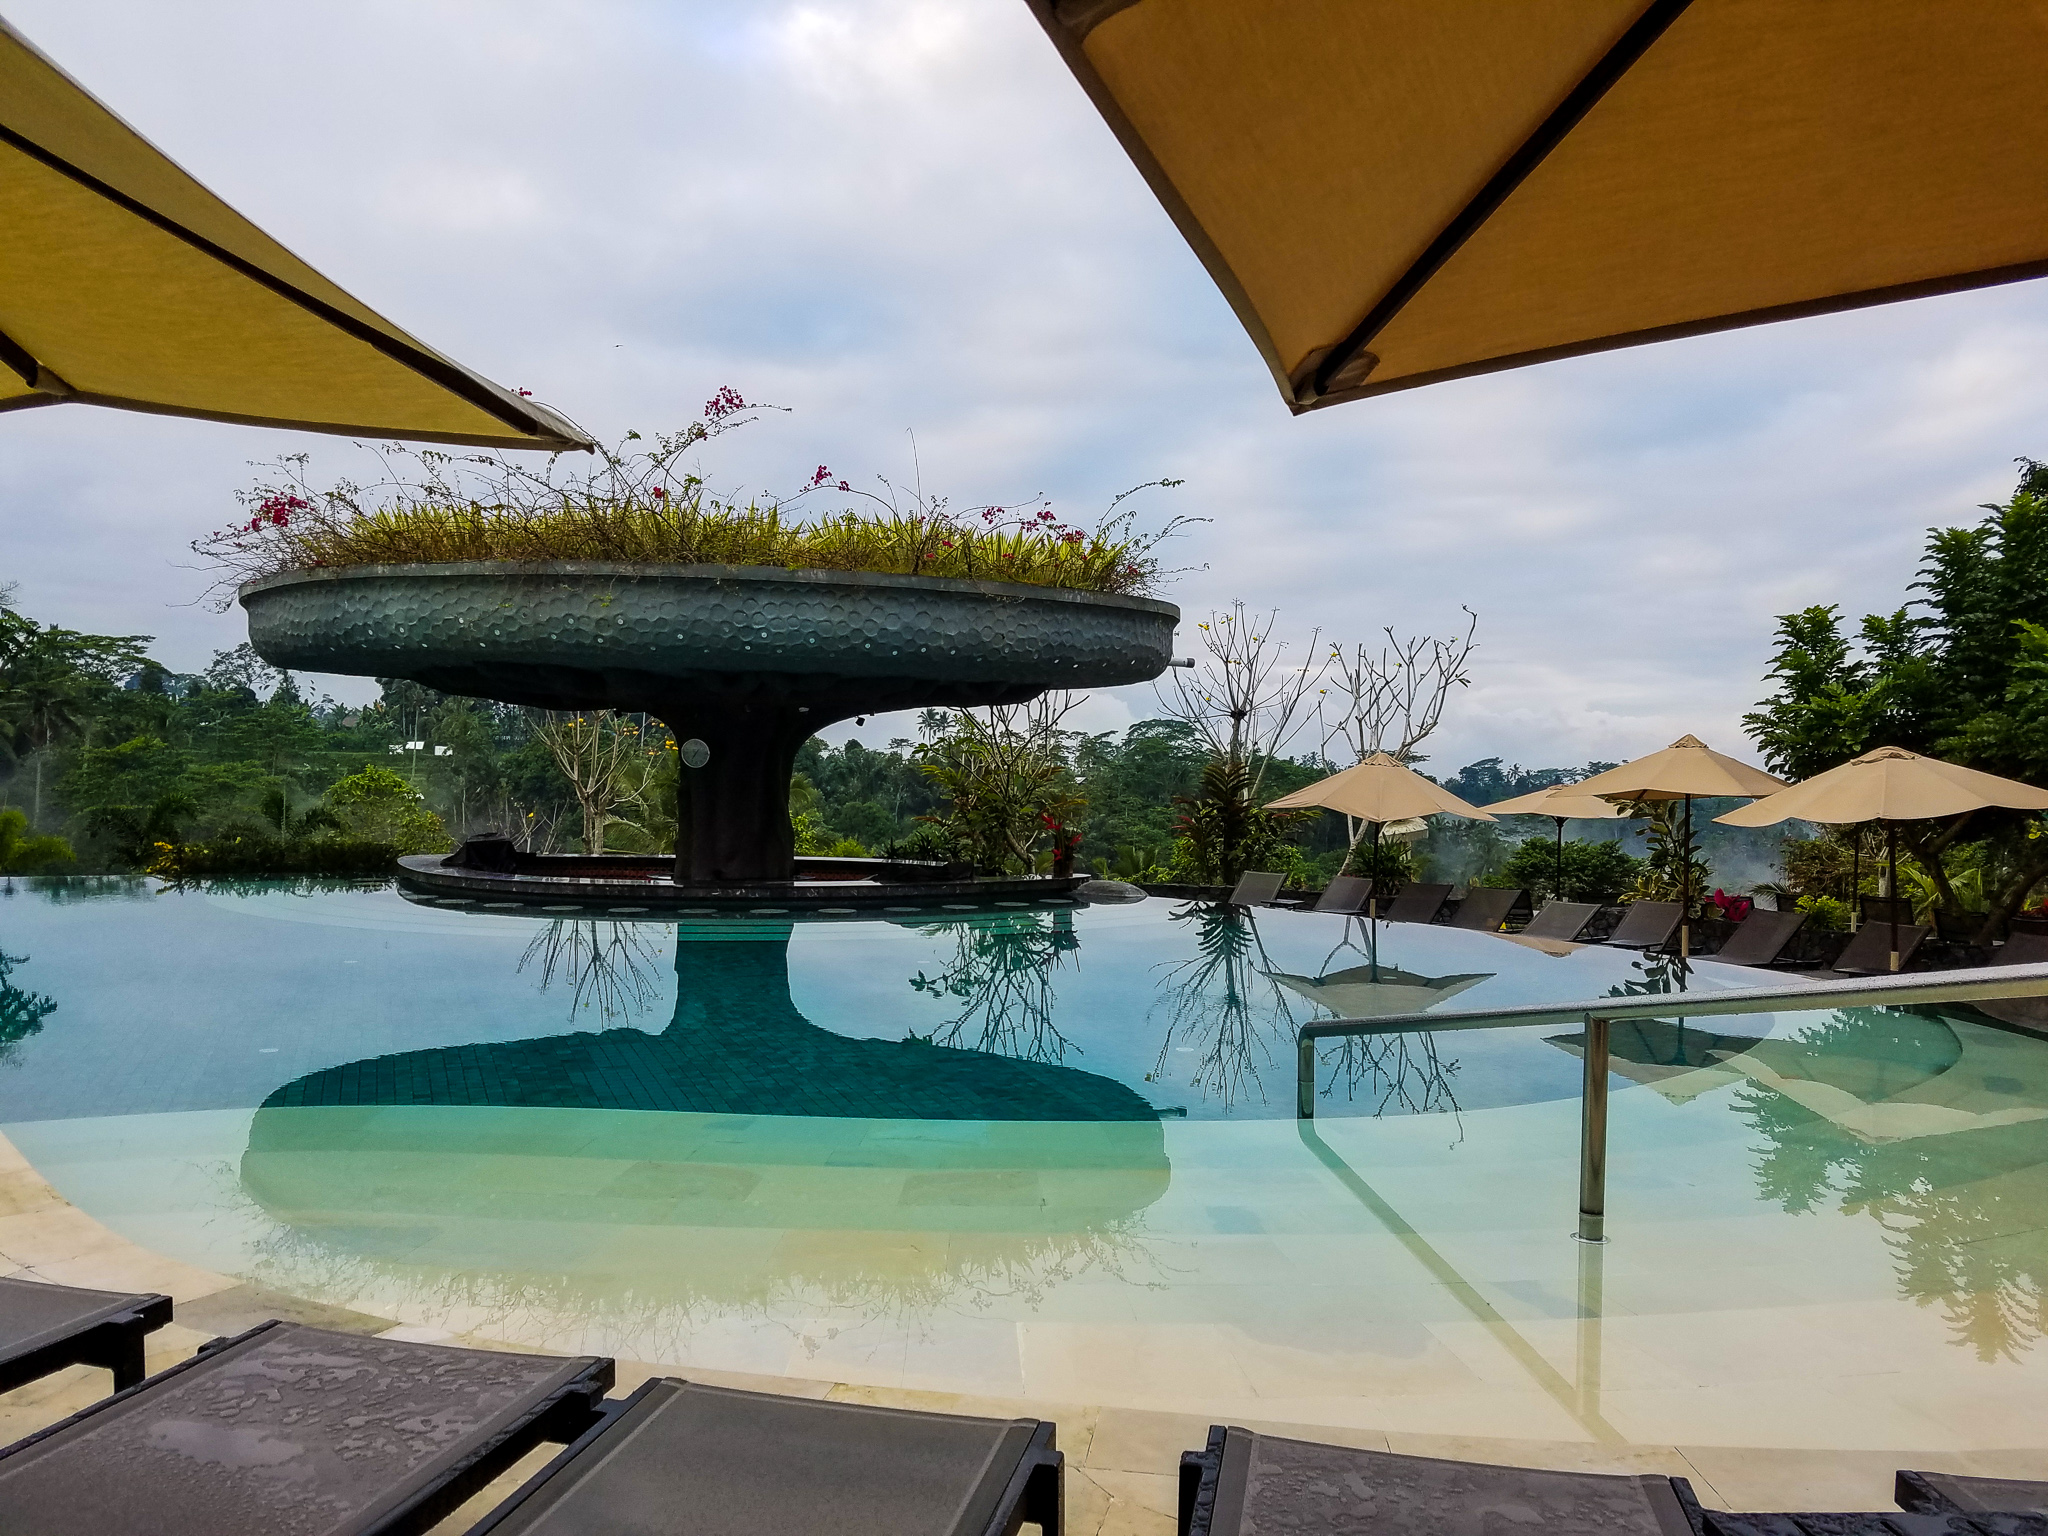 This is the beautifully designed swim up bar with a garden on top.